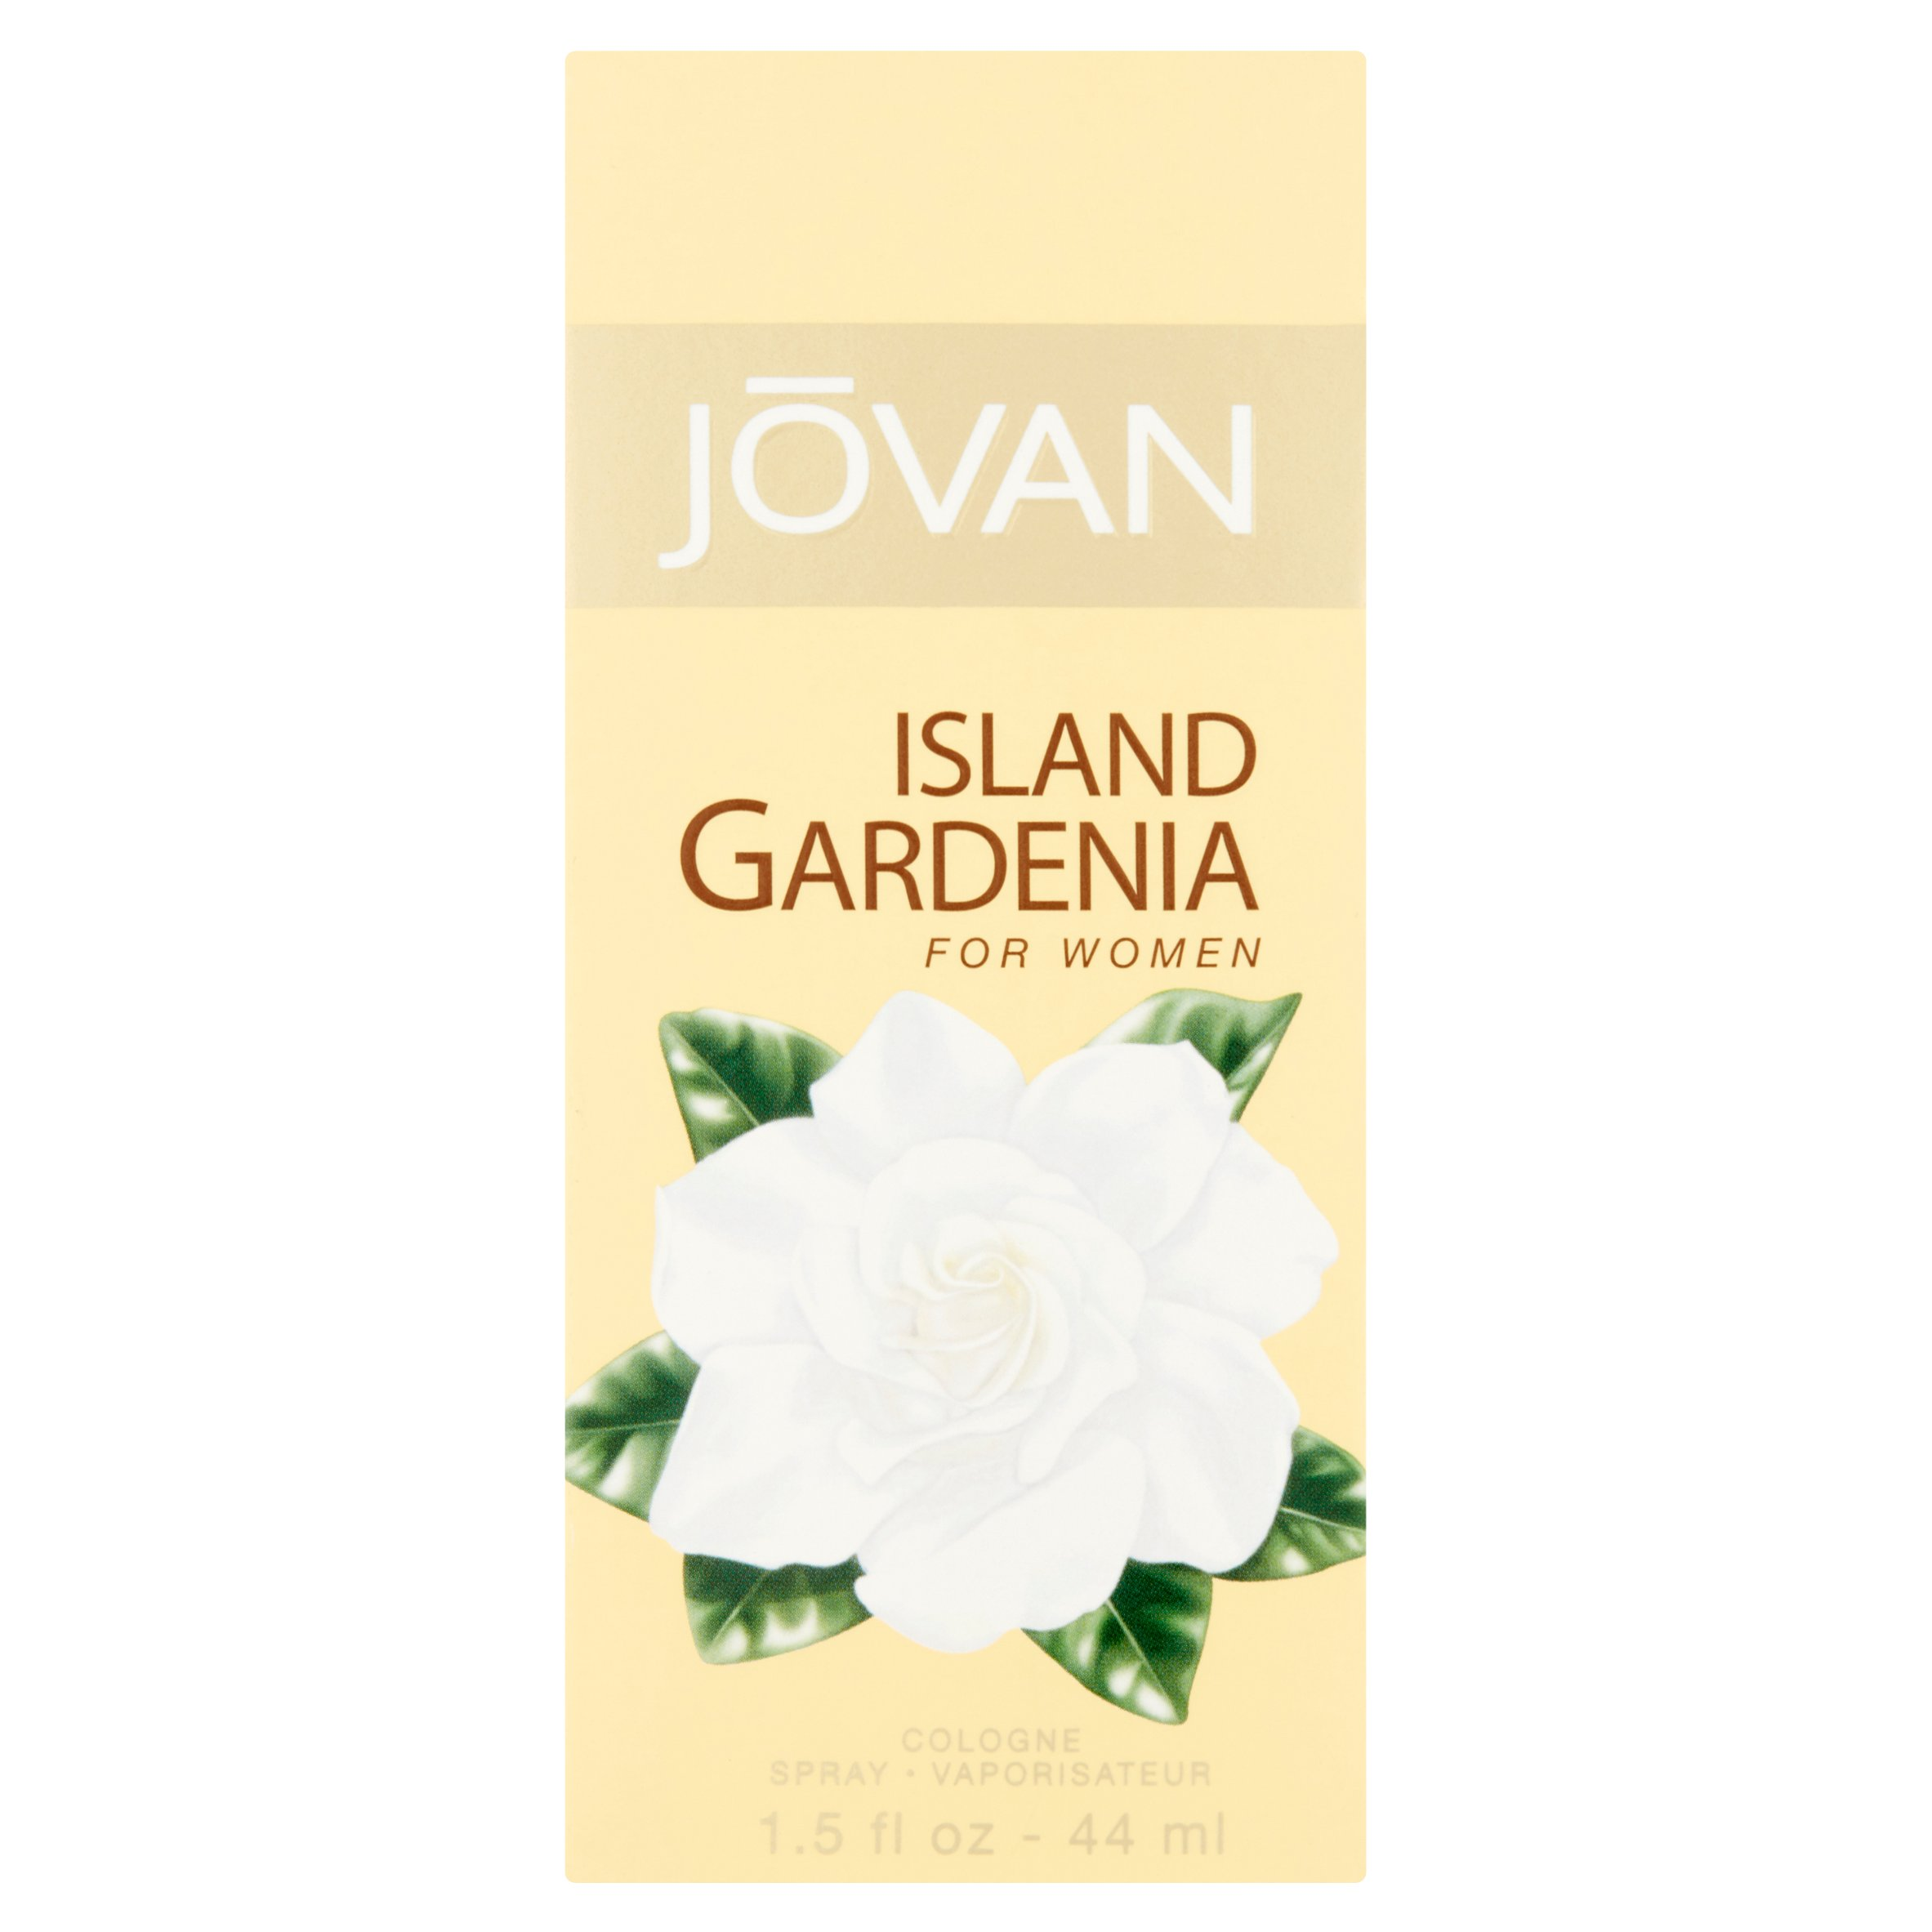 Jovan Island Gardenia Cologne Spray for Women, 1.5 fl oz